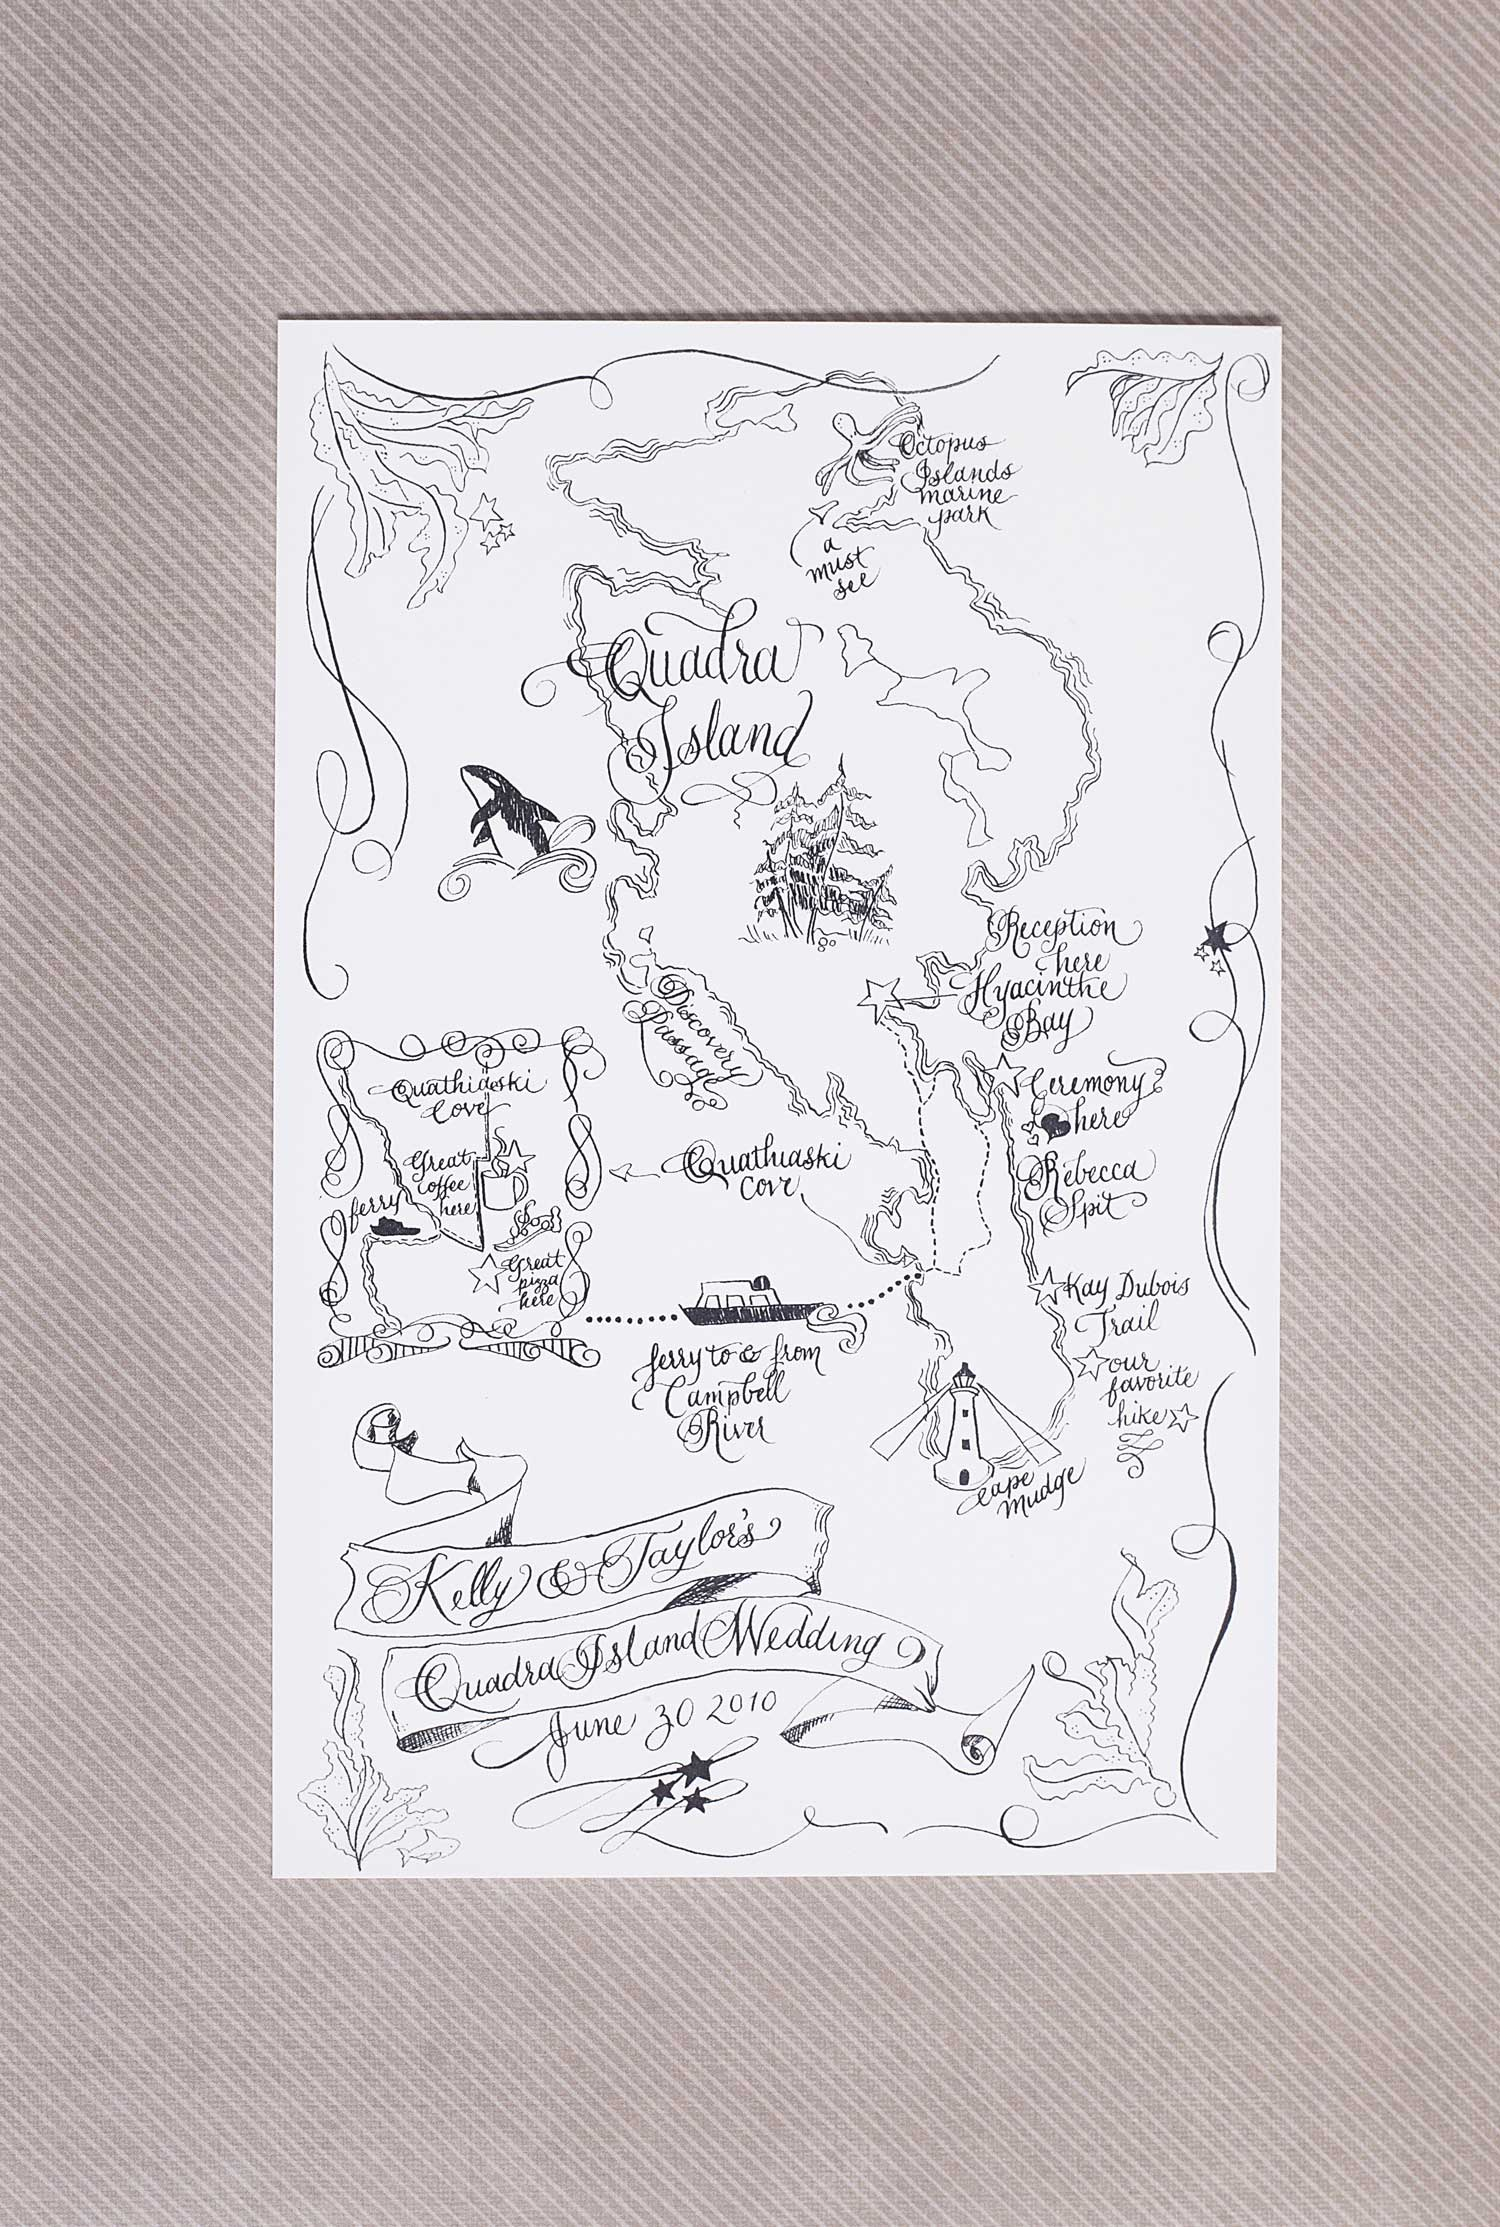 Wedding Map calligraphy illustration hand made hand illustrated weddings directions